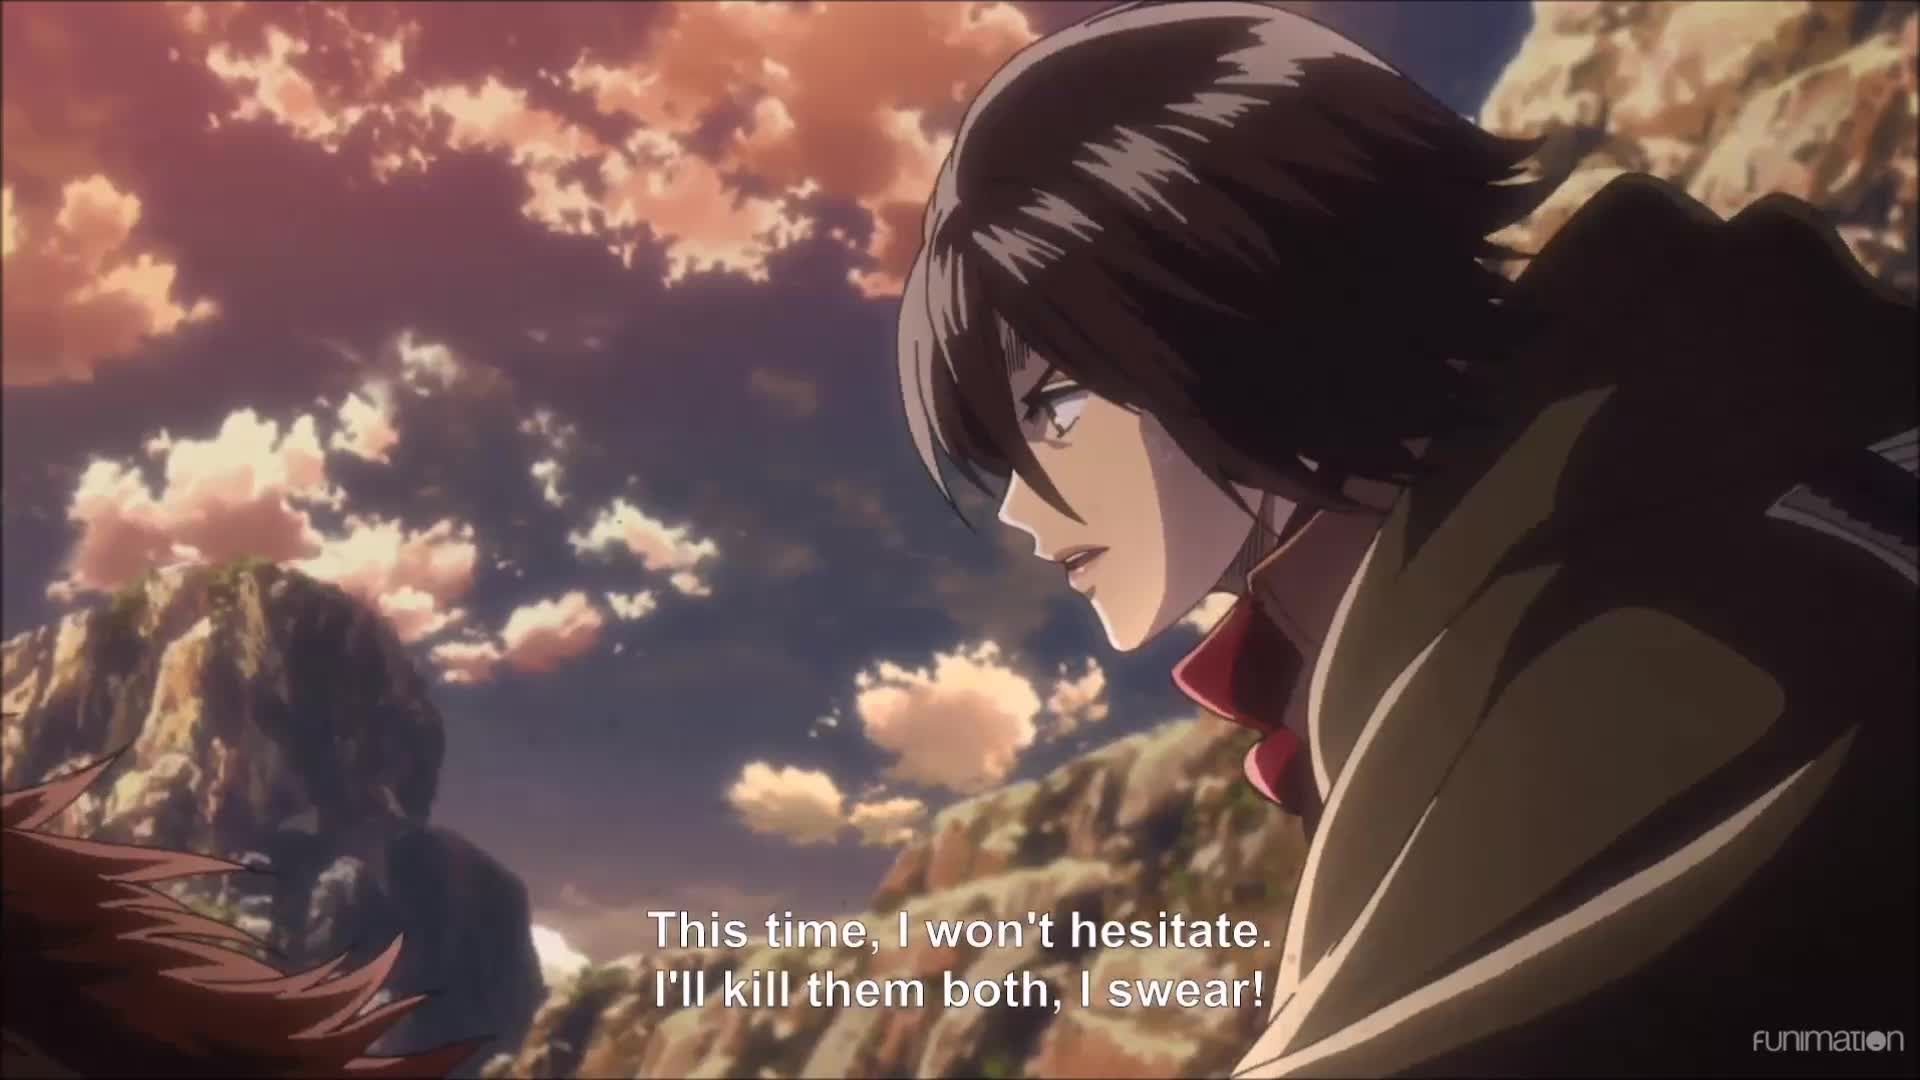 anime, attack on titan, attack on titan episode 36, attackontitan, attackontitanepisode36, dark fantasy, funimation, post apocalyptic, shingeki no kyojin, shinkgekinokyojin, shounen, shounen anime, steampunk, You know you messed up when Mikasa wants to kill you. Attack on Titan Ep 36 GIFs